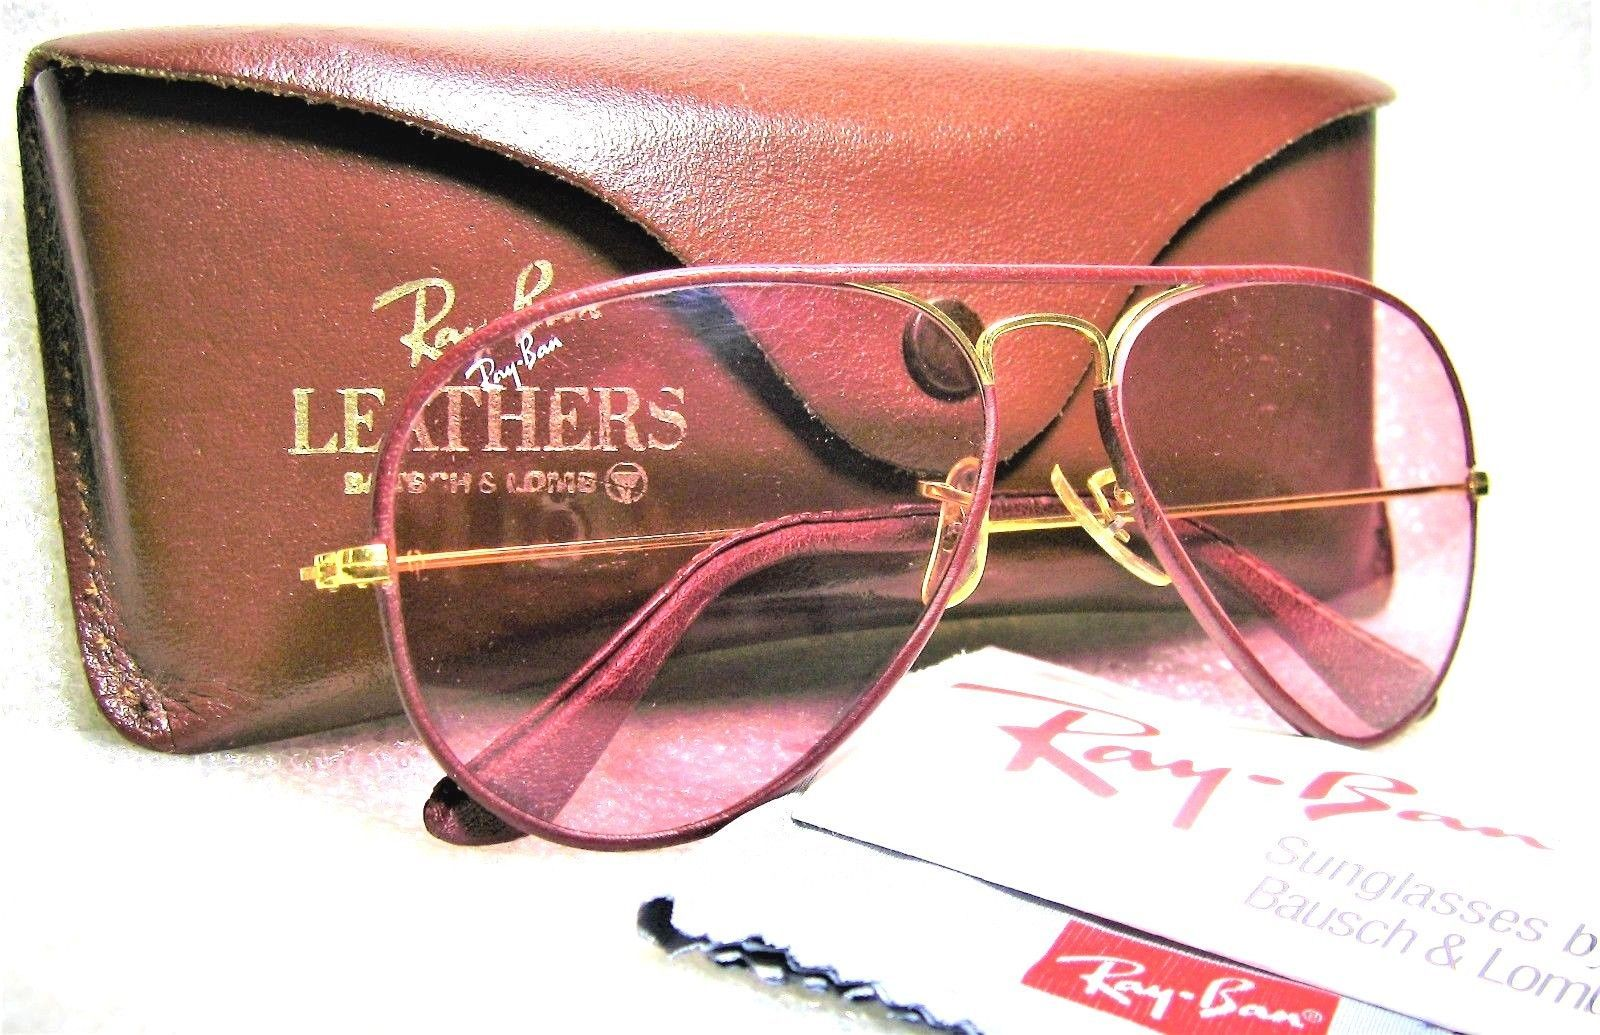 aa97fcb9b5 Ray-Ban USA Vintage B L Aviator Leathers L0034 Rose-Changeables Mint  Sunglasses